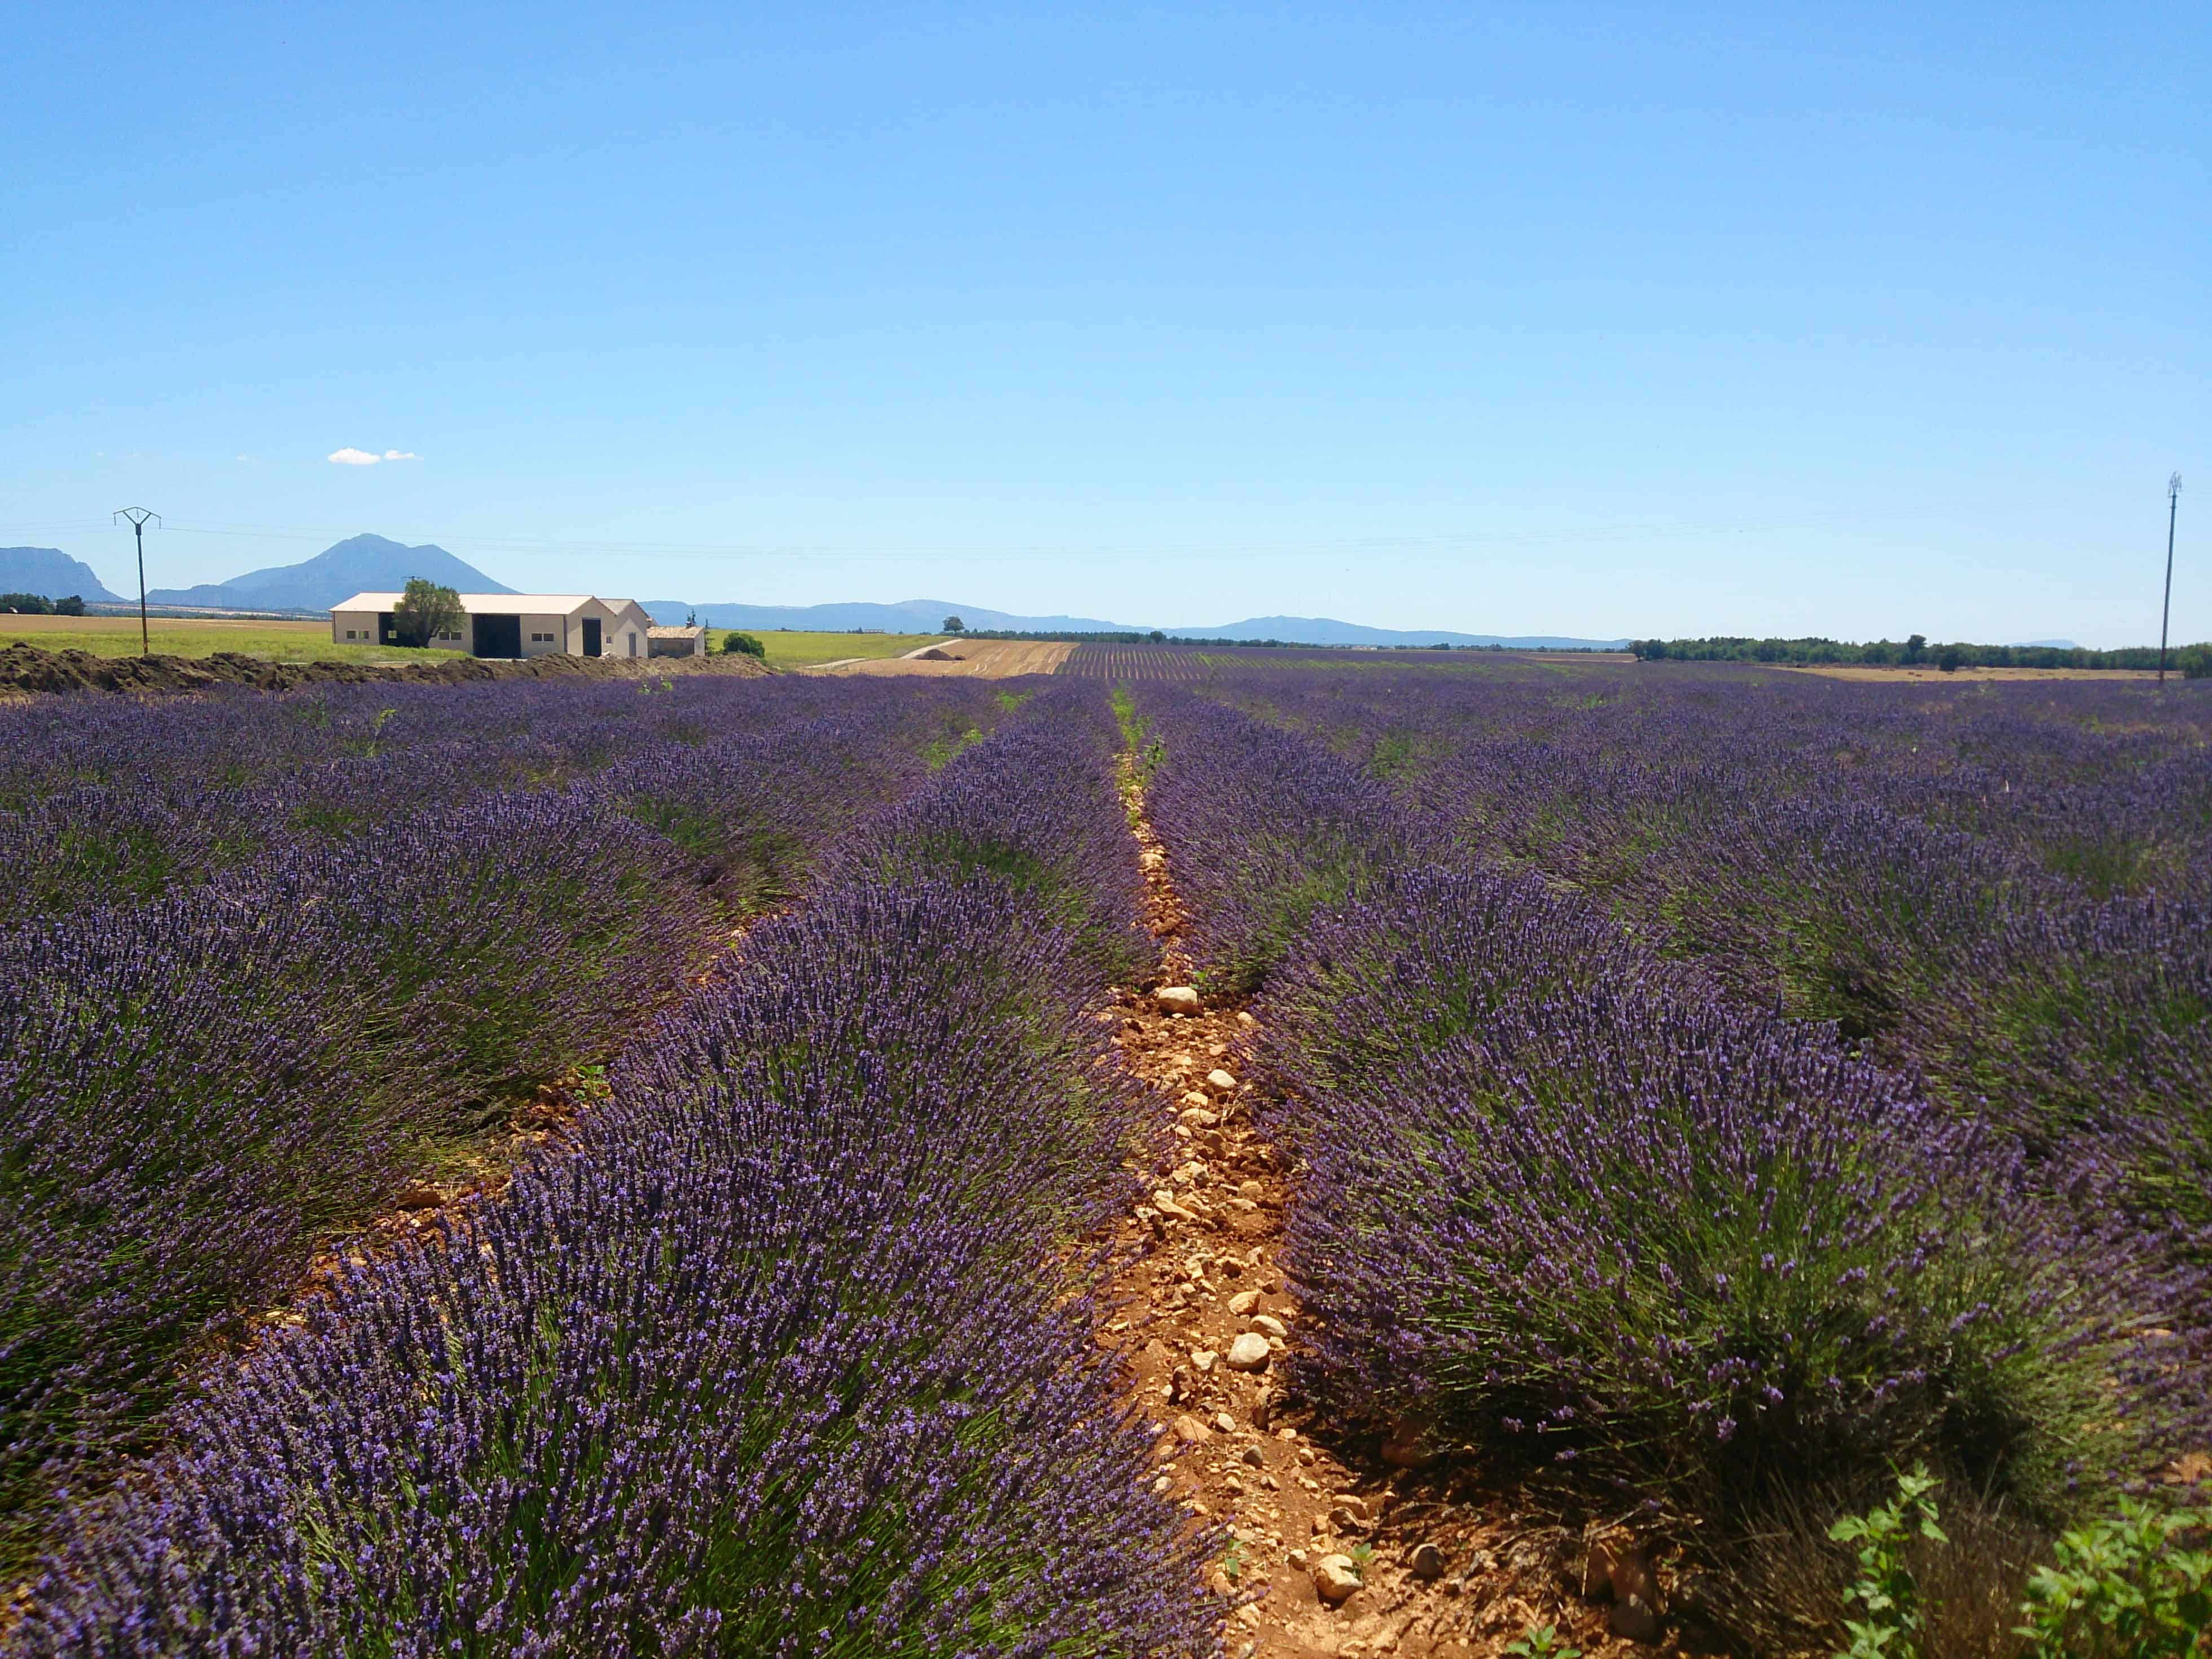 Road Trip along the Lavender Route in France